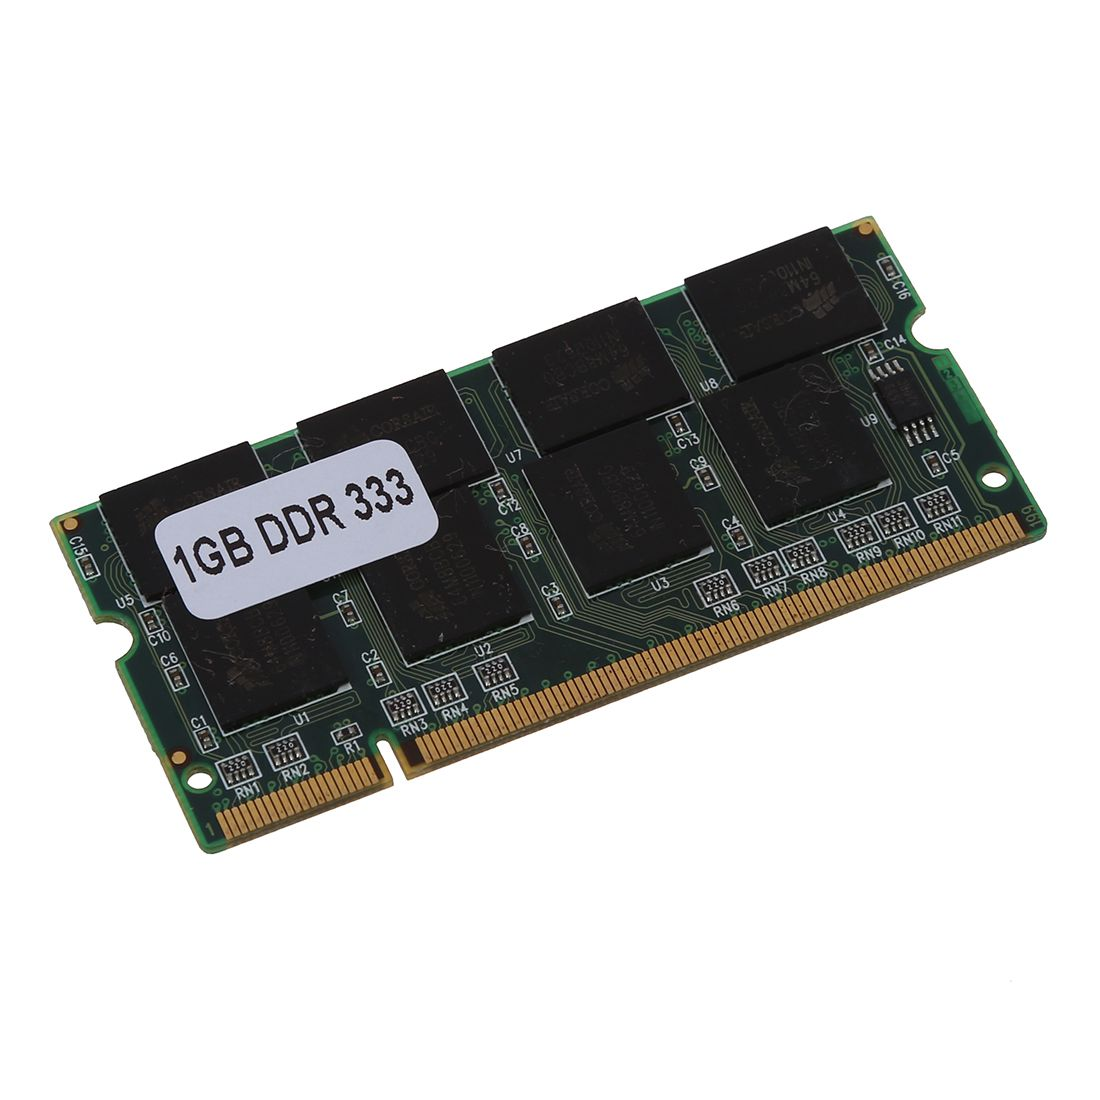 все цены на DDR1 1GB ram PC2700 DDR333 200Pin Sodimm Laptop Memory DDR 1GB, 333MHZ NON-ECC PC DIMM онлайн